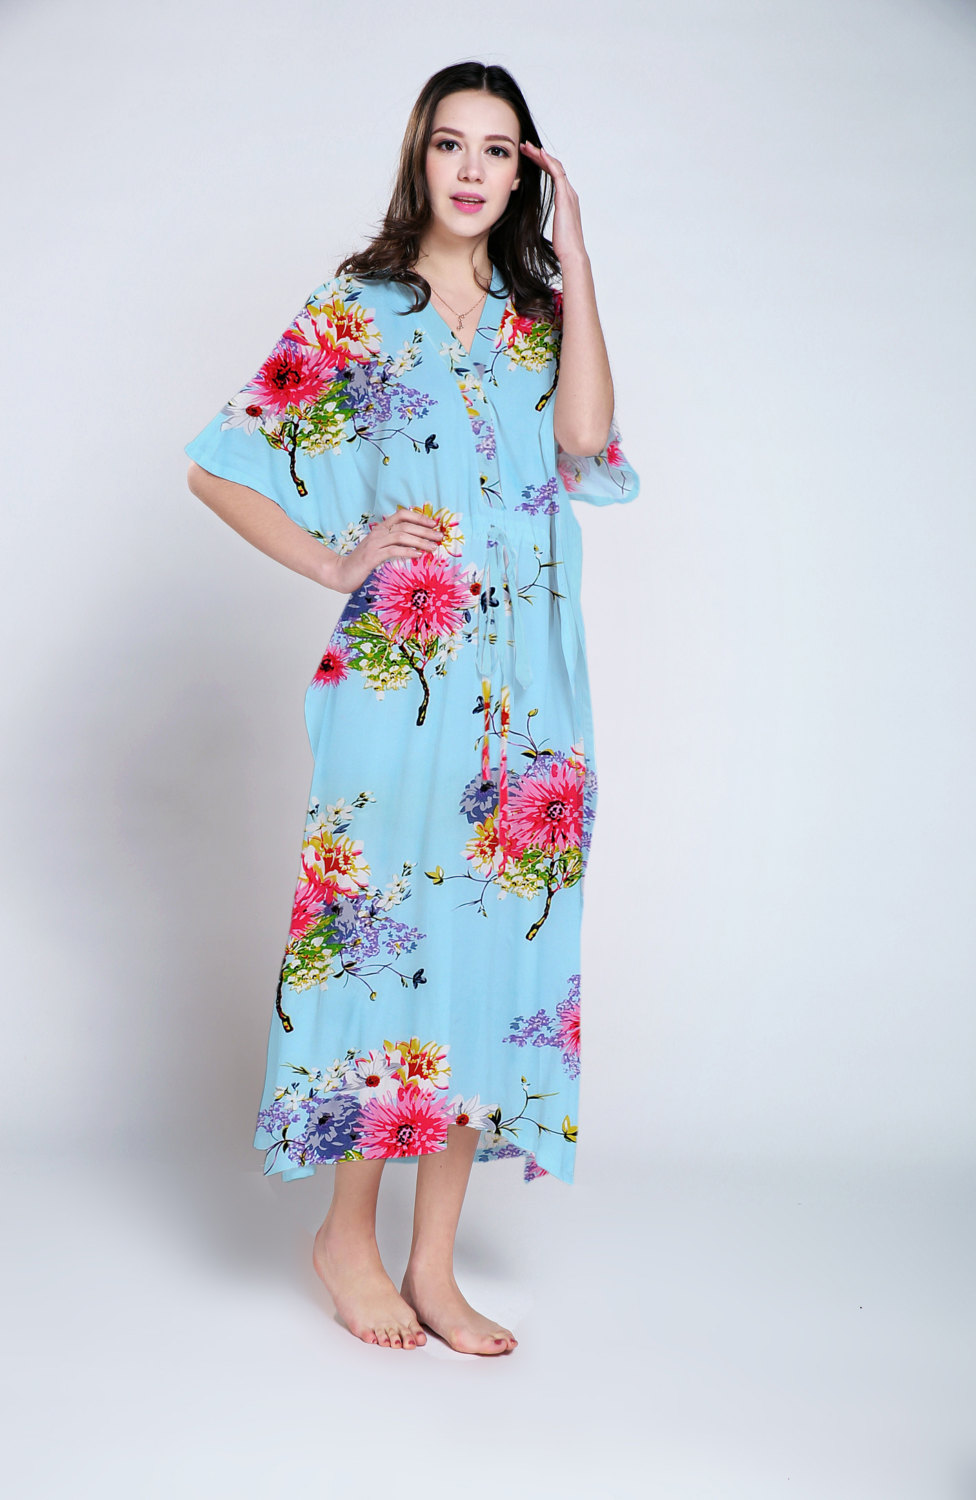 The Cutest Maternity Hospital Gowns to Shop